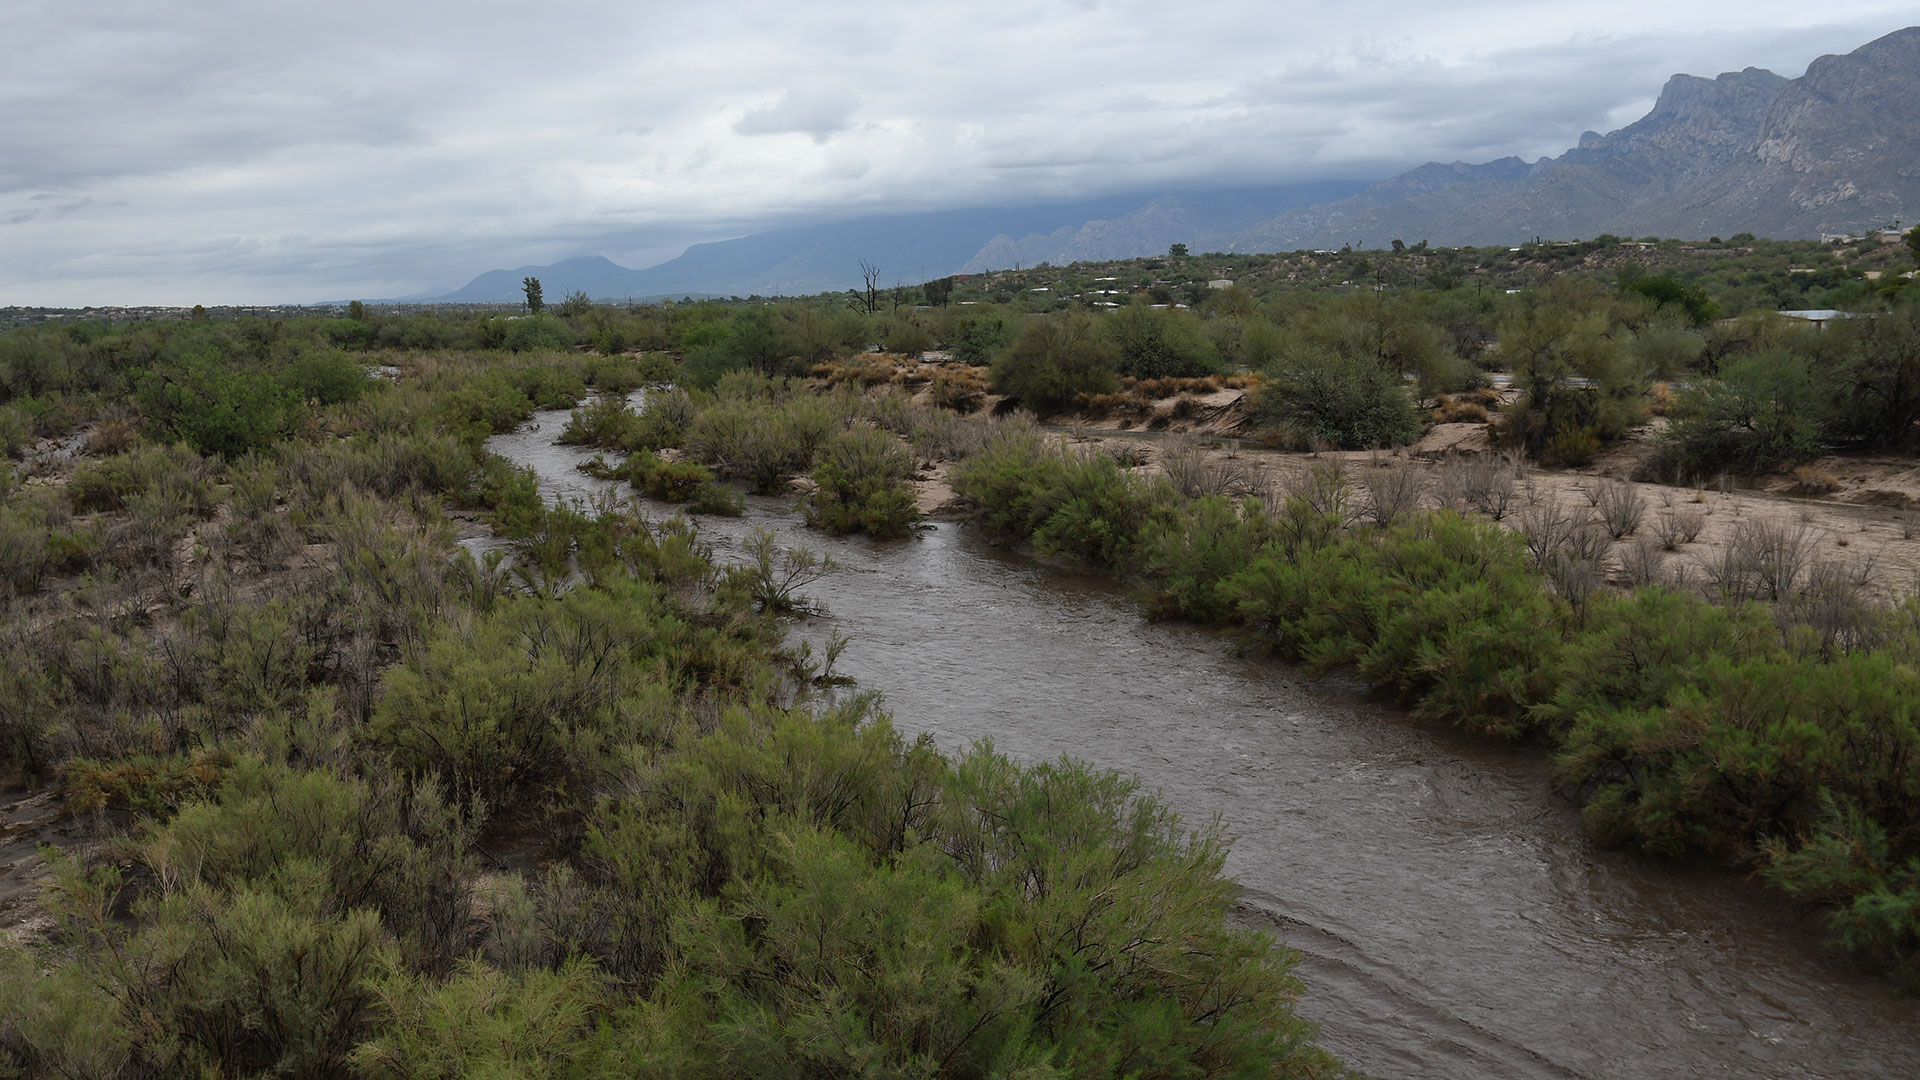 Canada del Oro wash looking east from the bridge on La Cholla during Monsoon 2021.